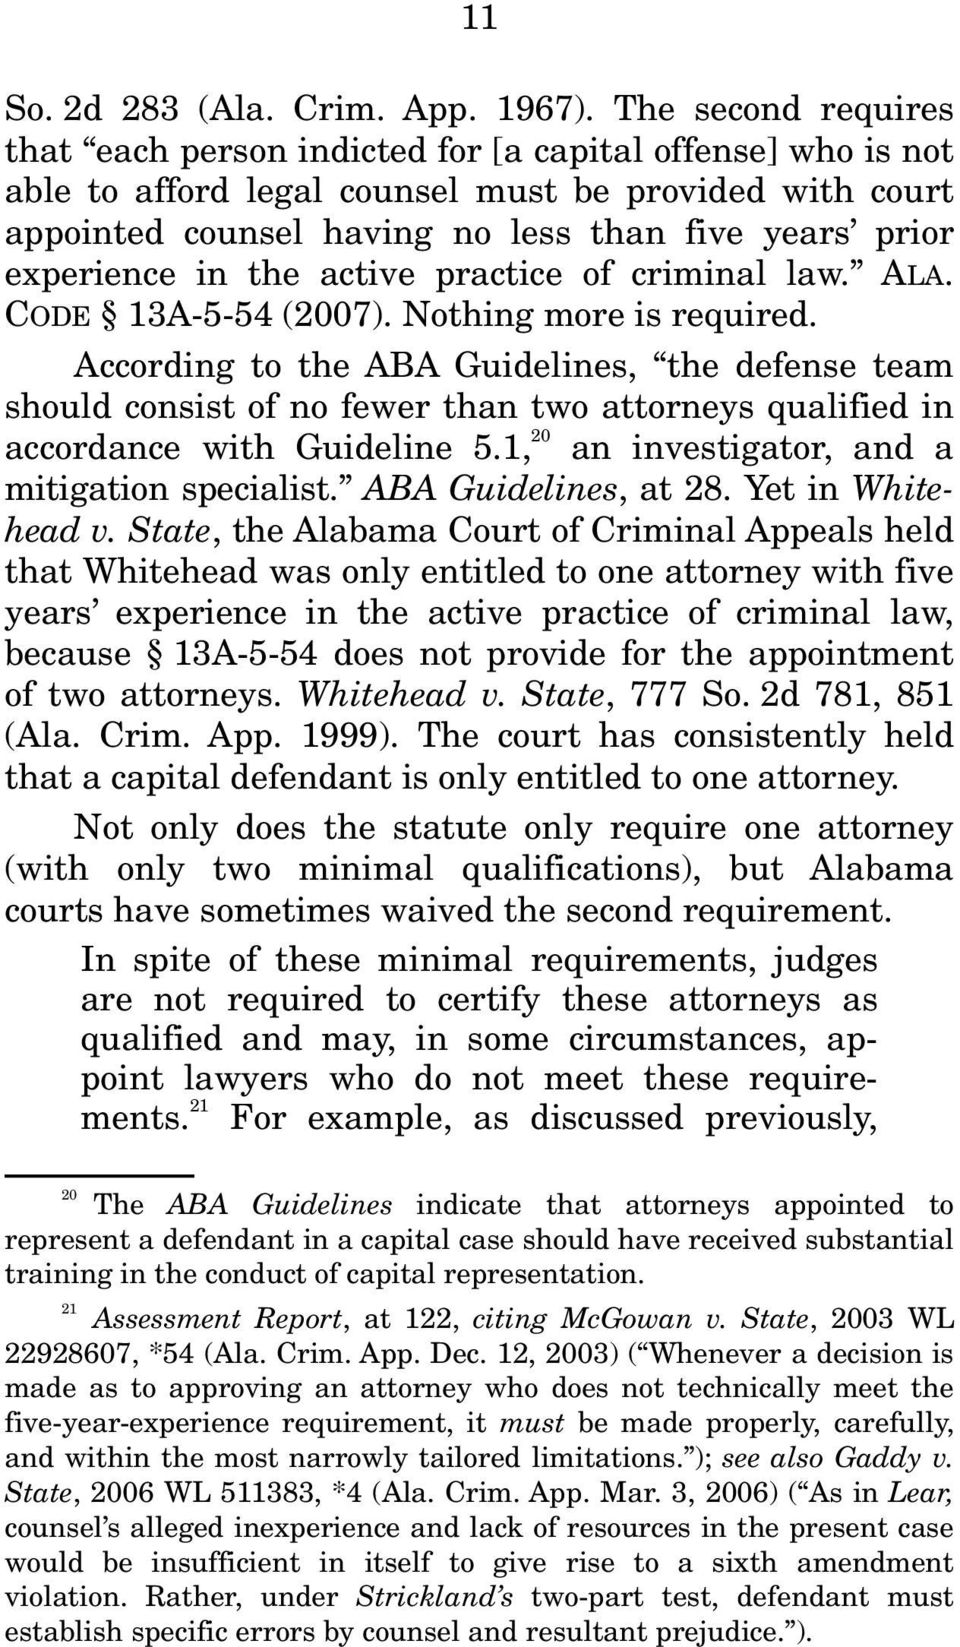 experience in the active practice of criminal law. ALA. CODE 13A-5-54 (2007). Nothing more is required.